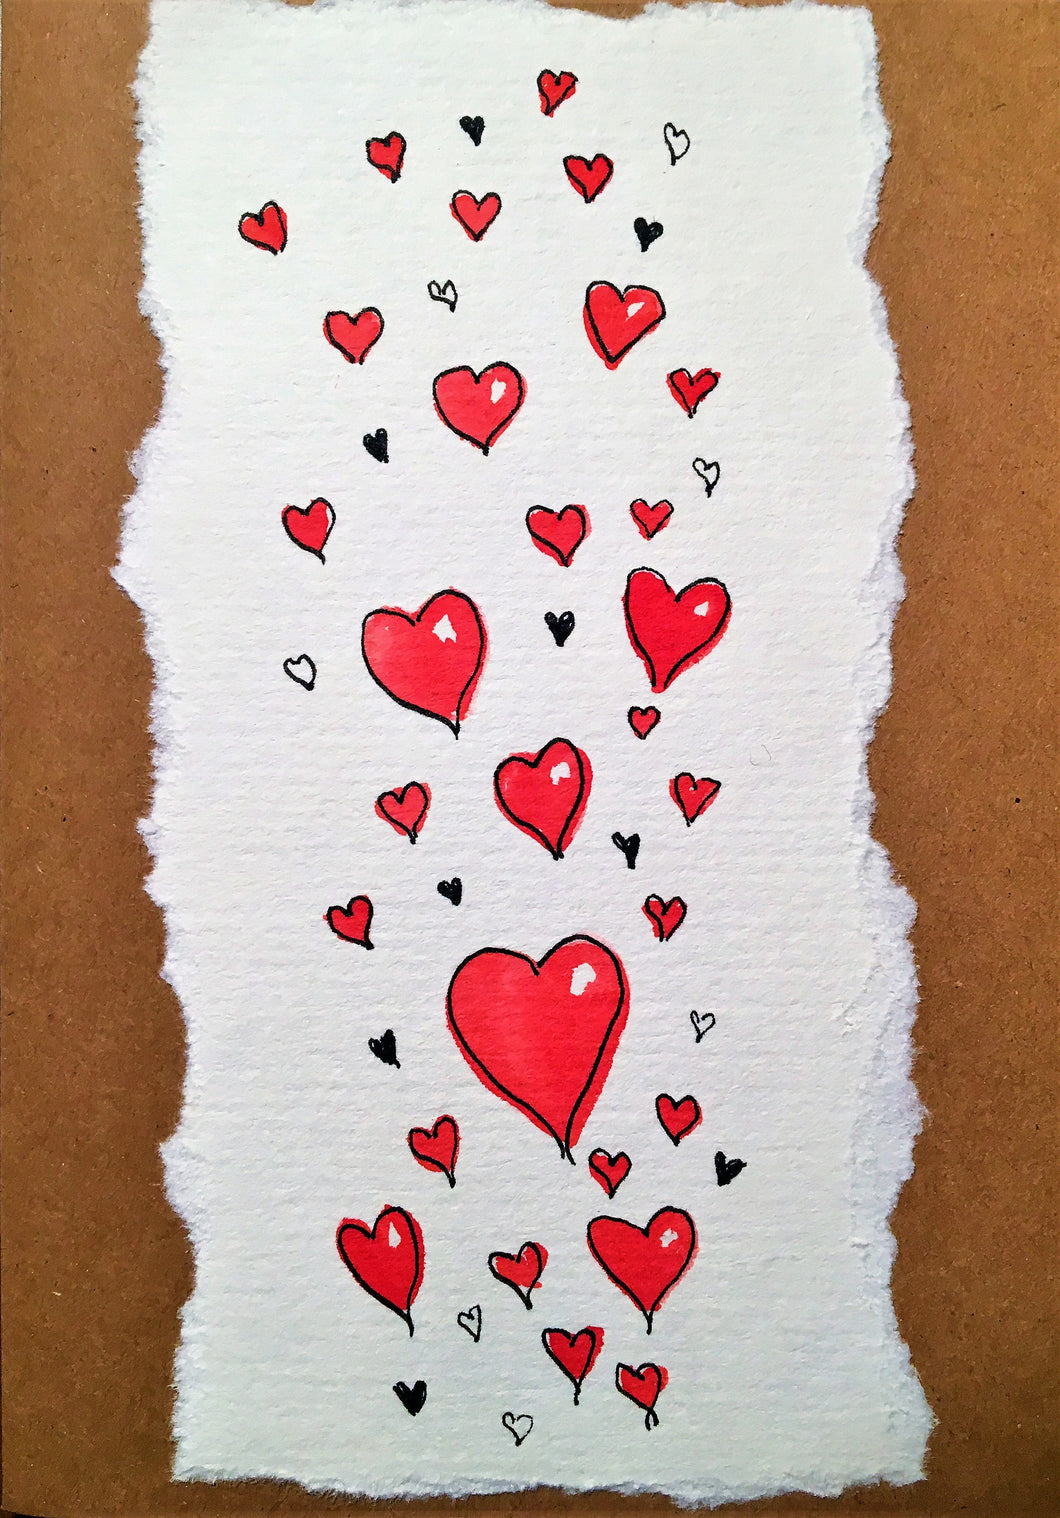 Valentines Card Lots of Love Hearts - Handmade - eDgE dEsiGn London